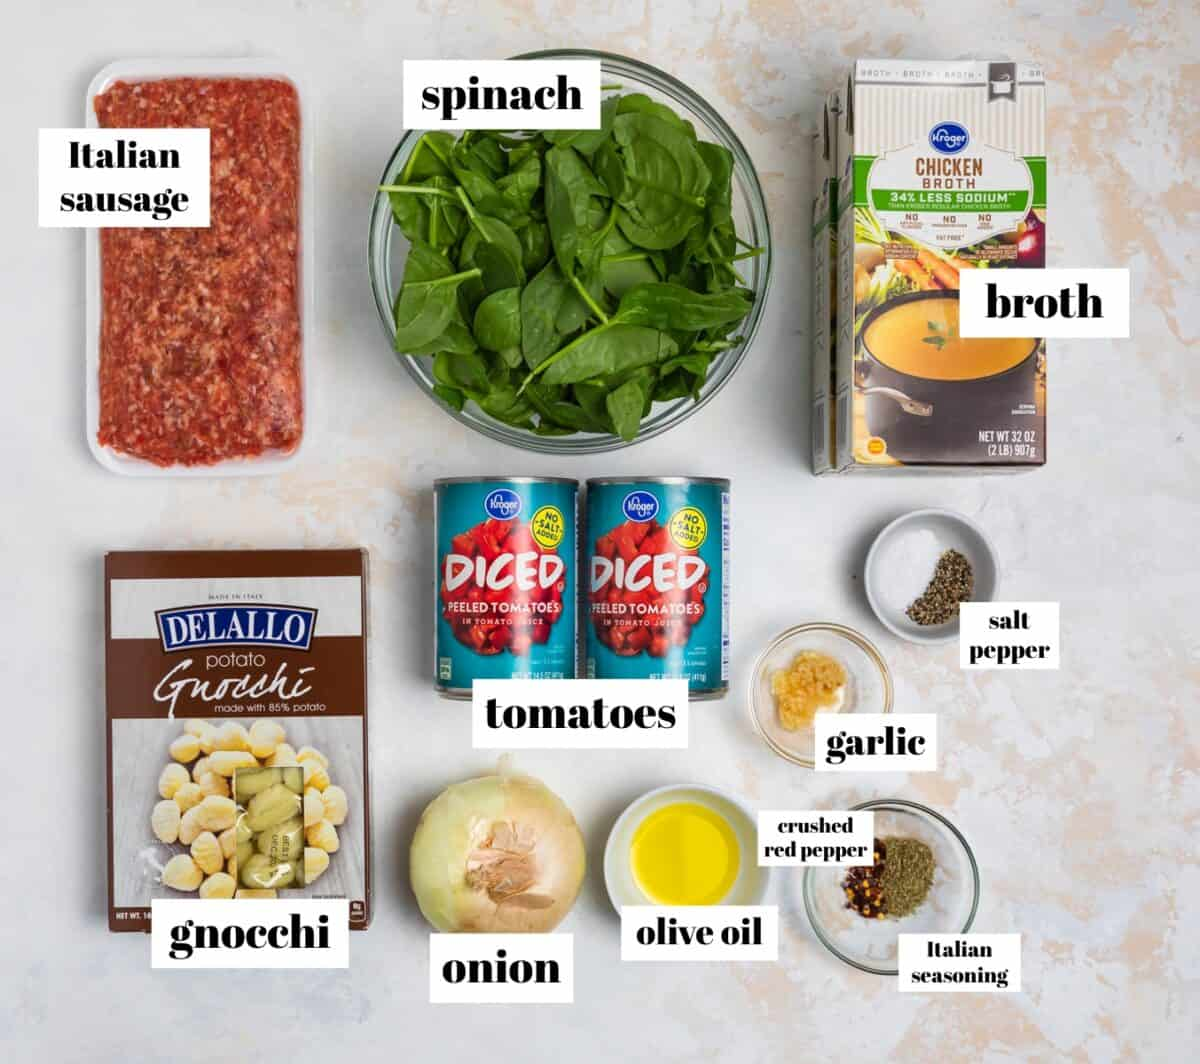 Broth, gnocchi, spinach, sausage and other ingredients labeled on counter.